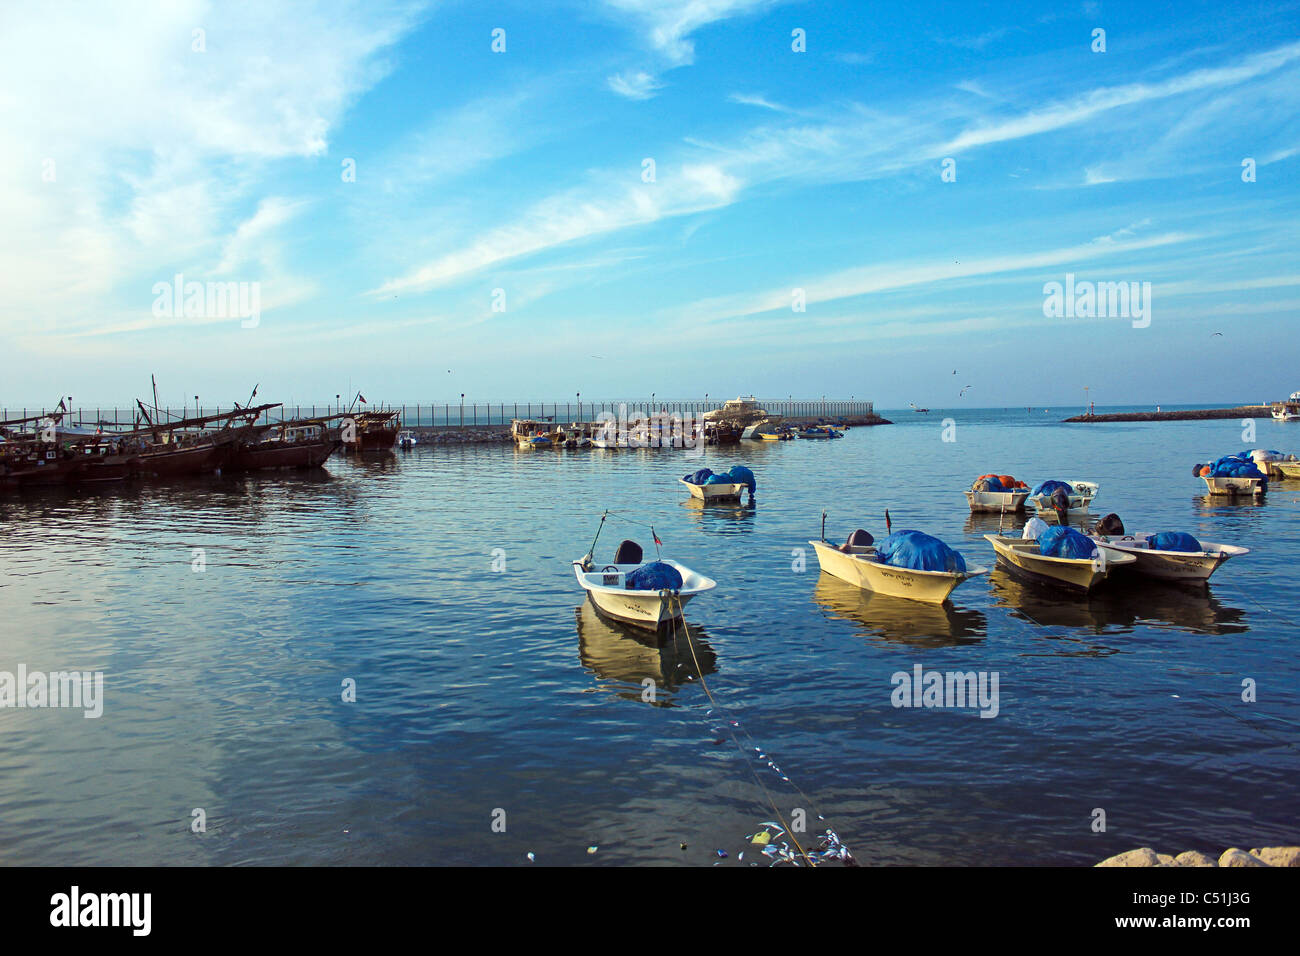 traditional old ships fisher men on a boat in kuwait harbor kuwait city - Stock Image